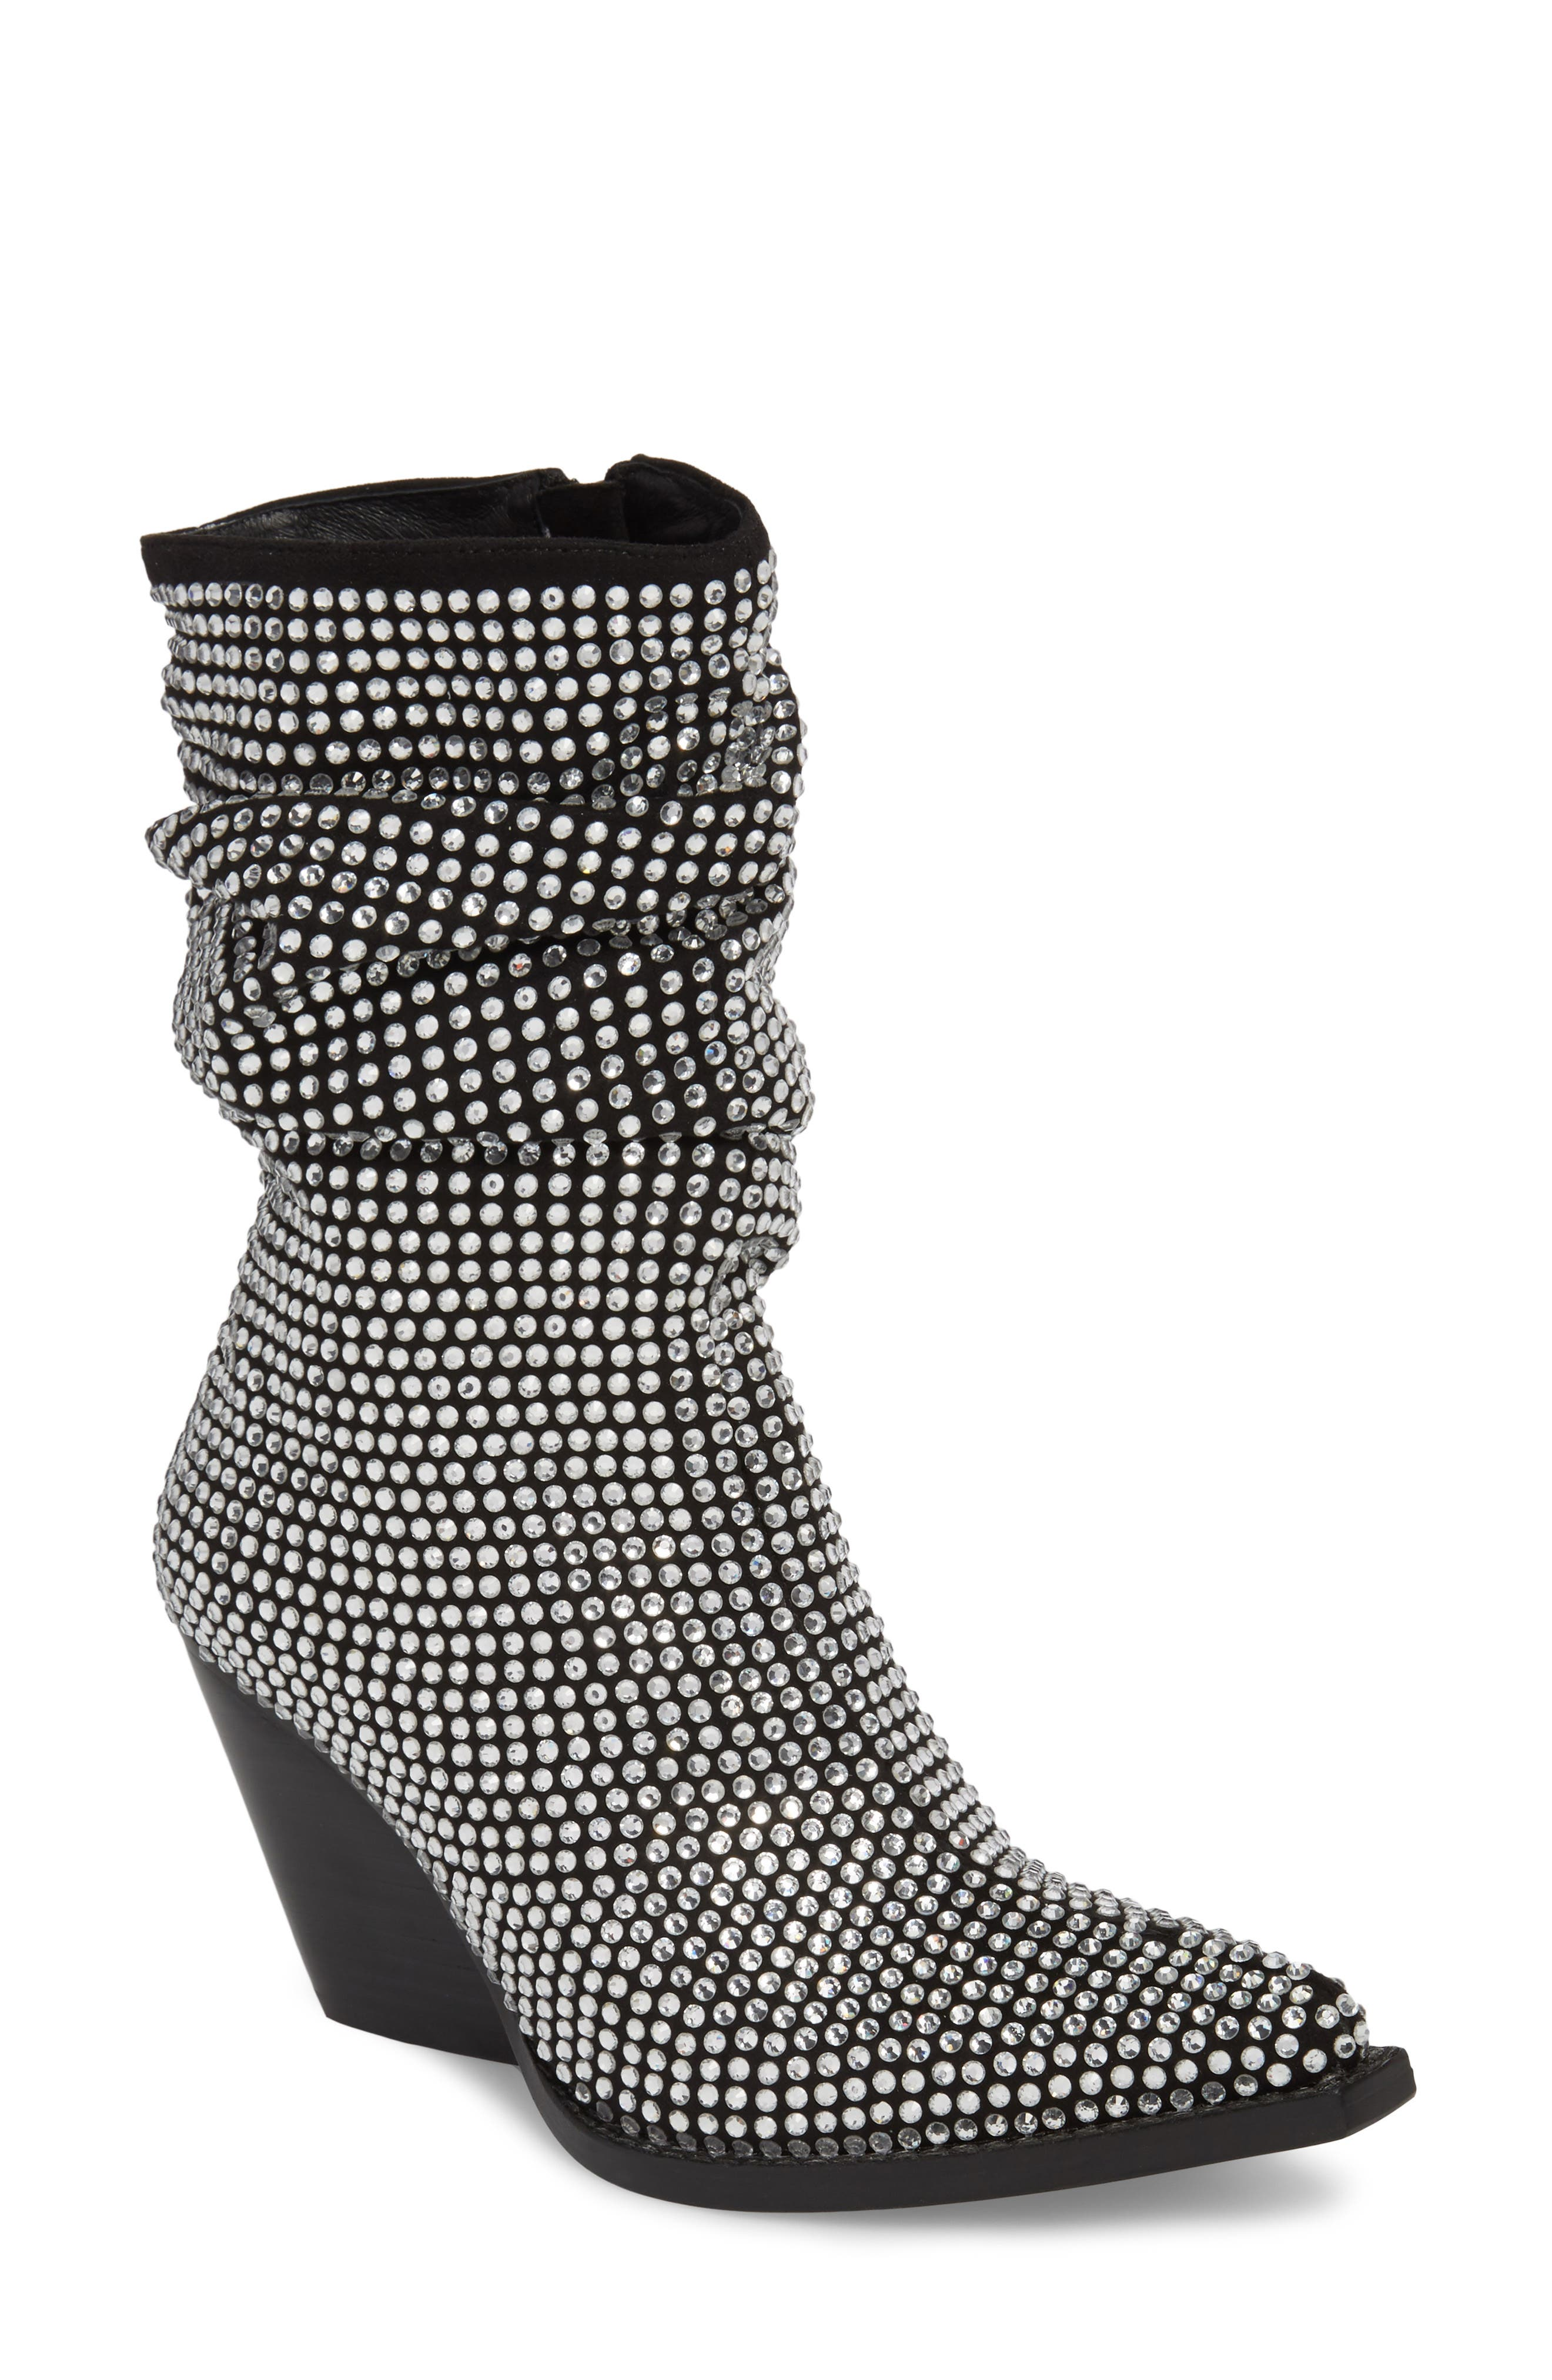 Controll Crystal Studded Slouch Boot,                         Main,                         color, Black Suede Silver